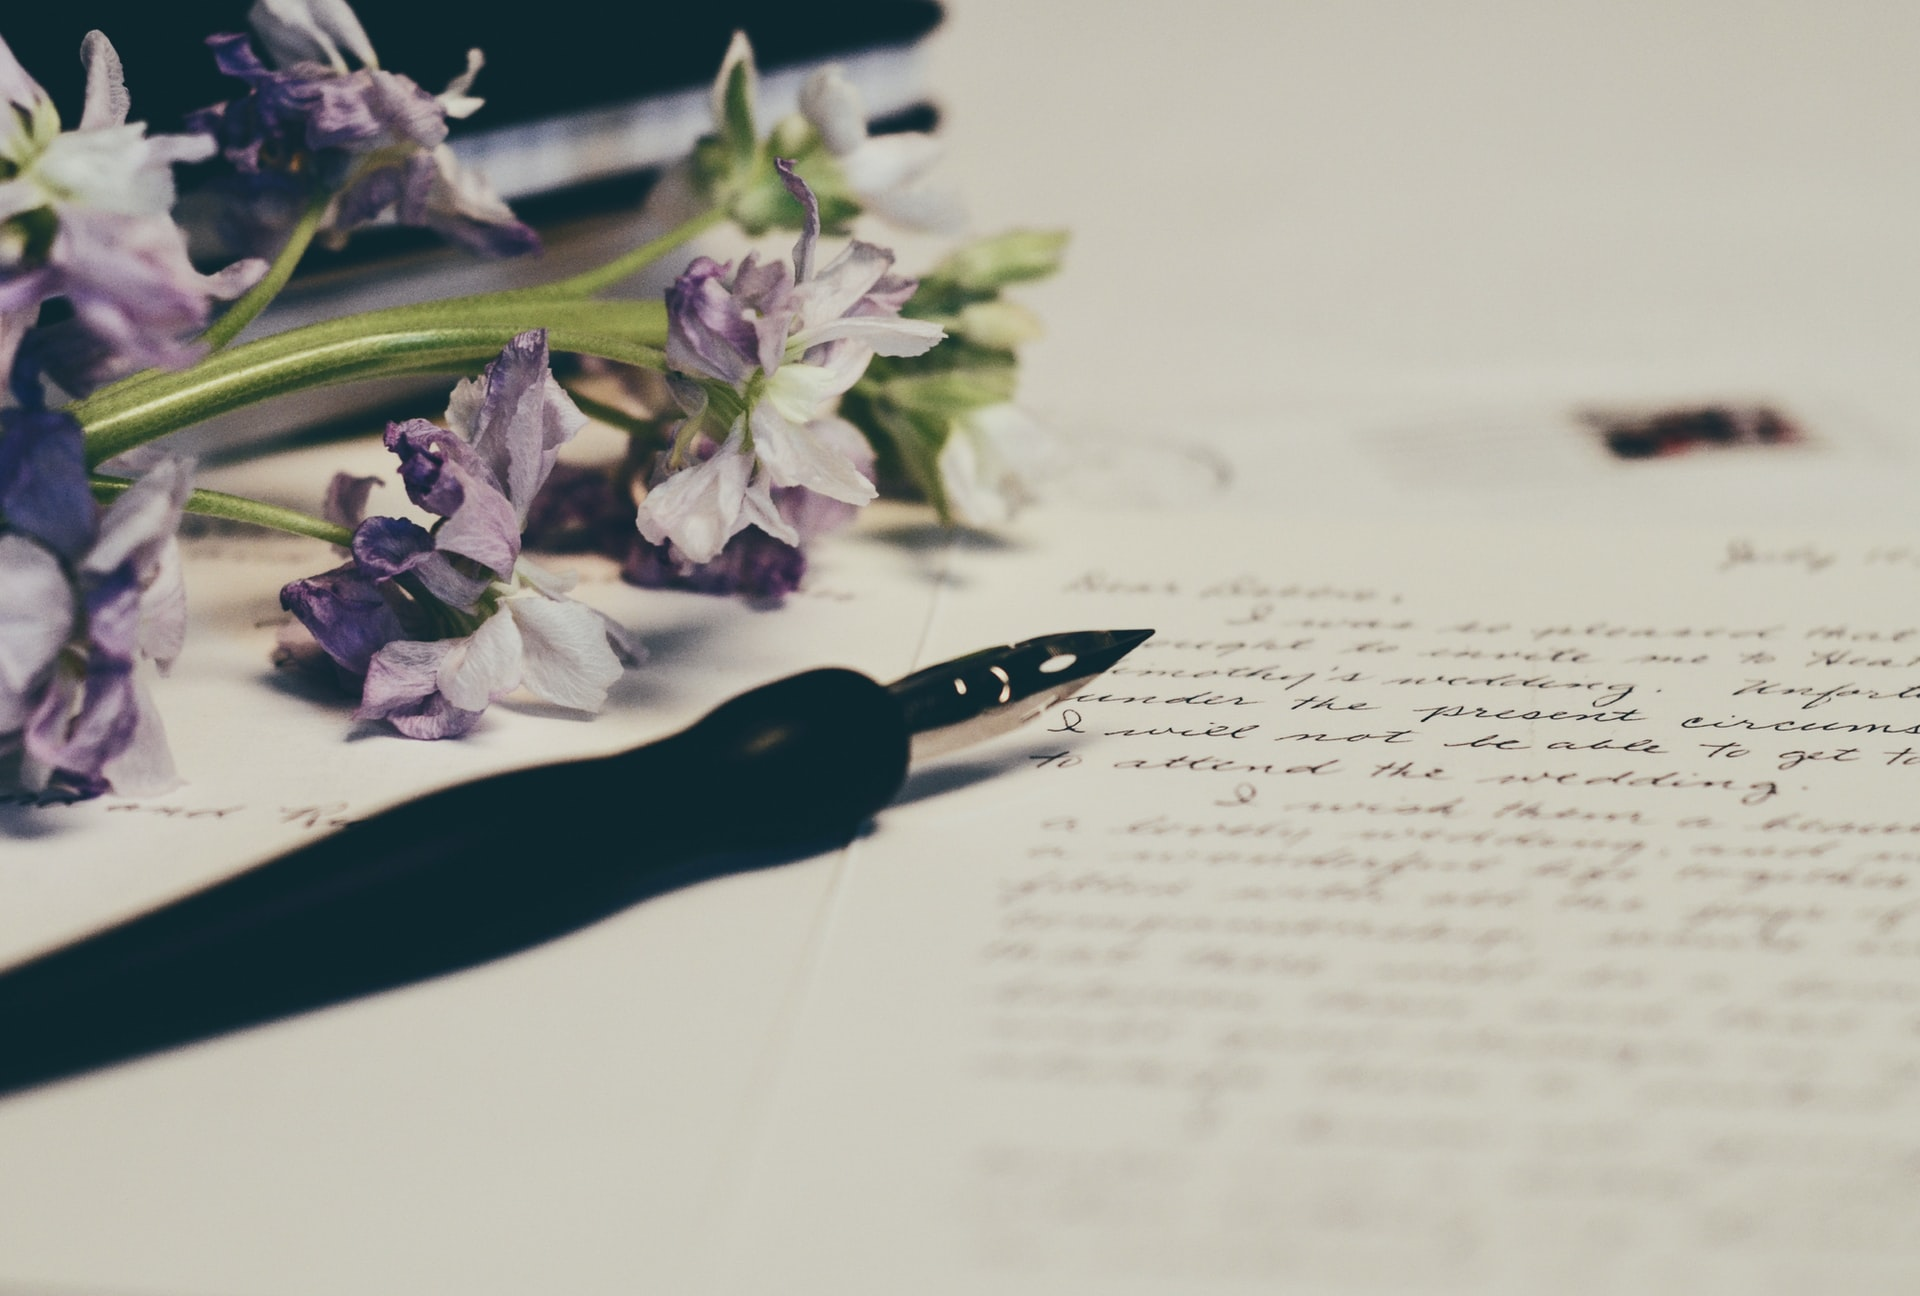 How to leave Digital Assets through a Will